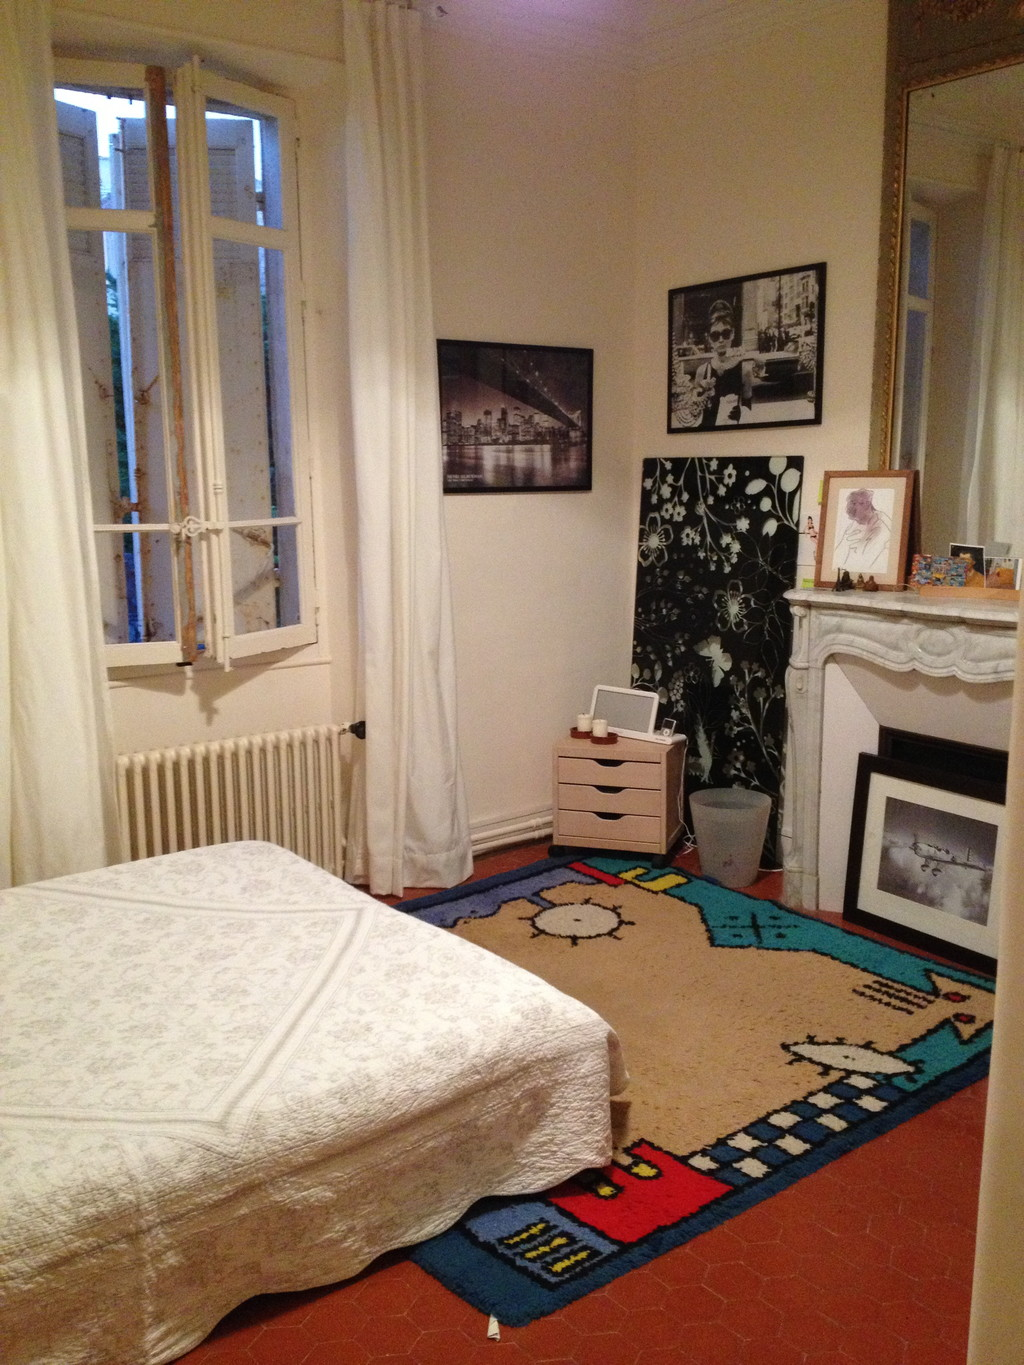 rent a room in a house near from the see in the heart of marseille